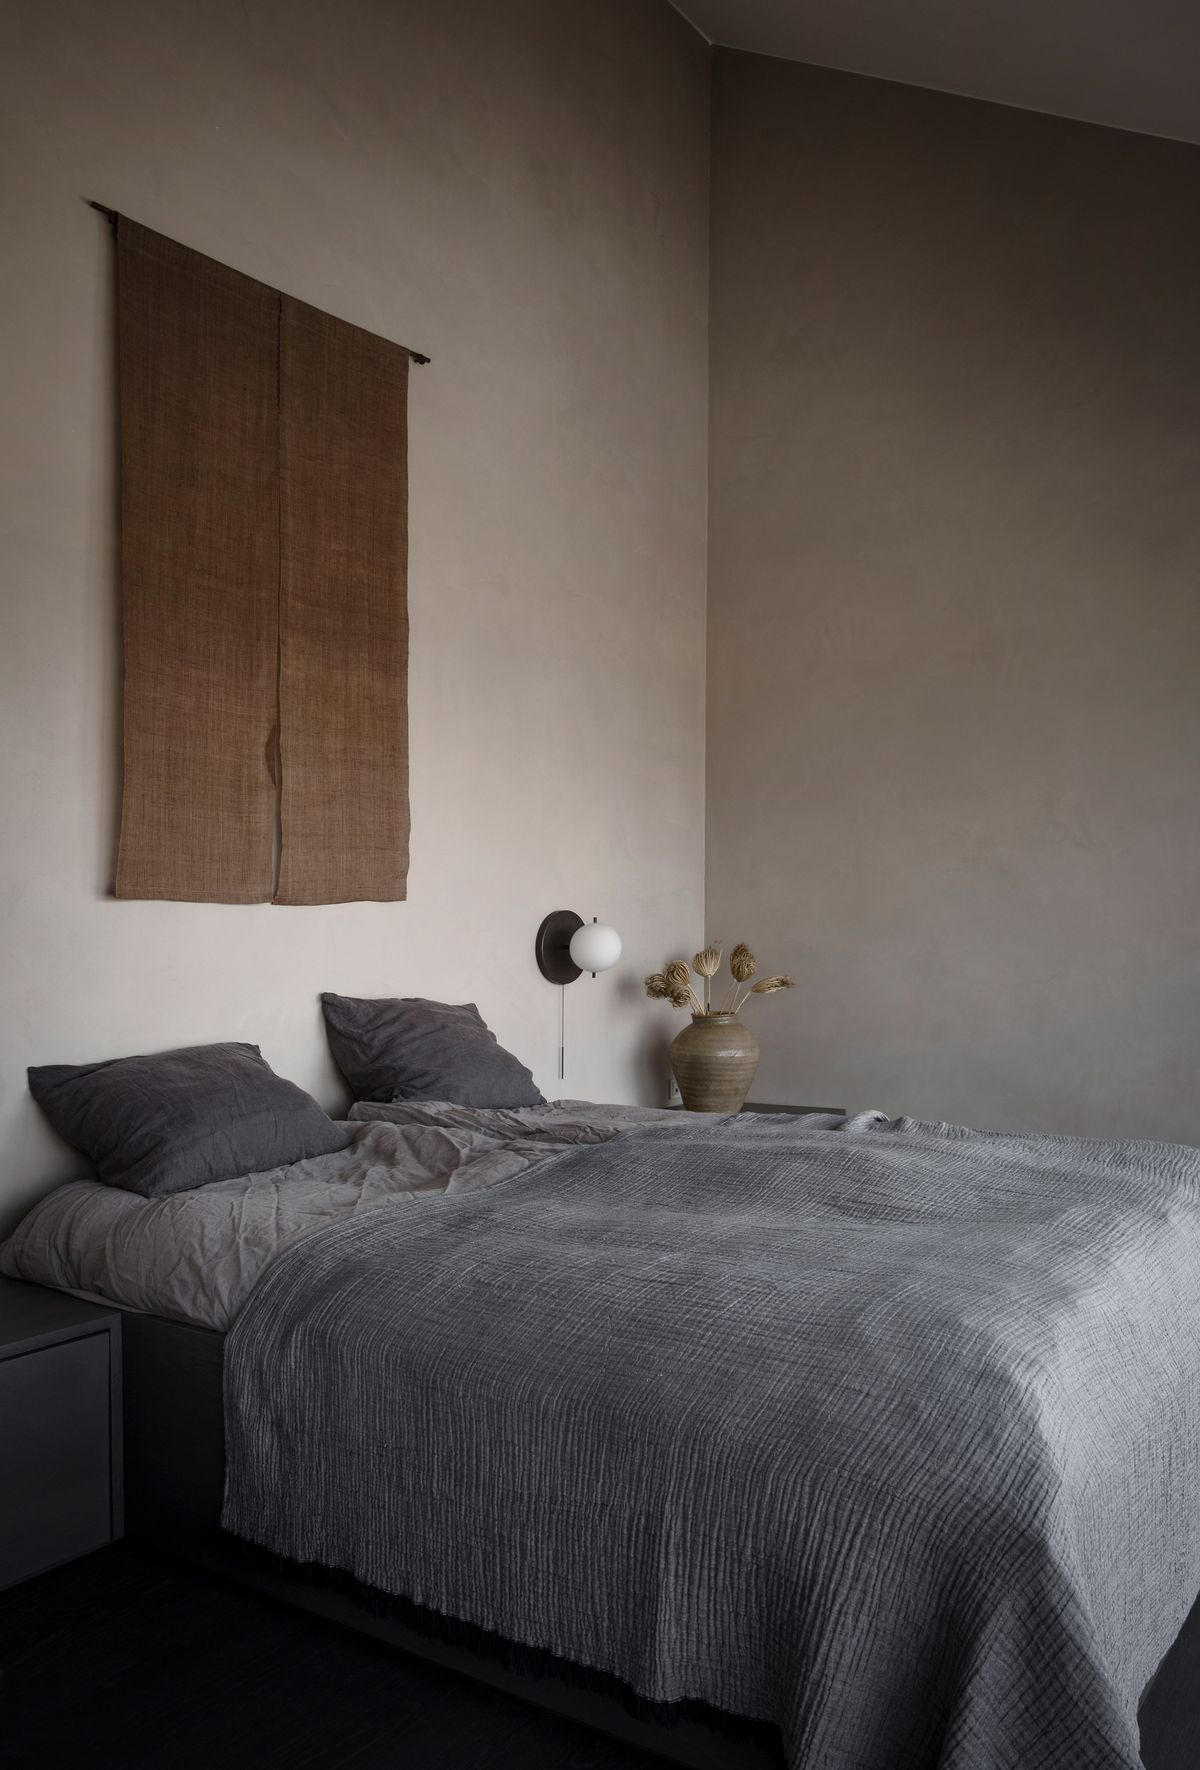 Bed with burlap art hanging on the wall